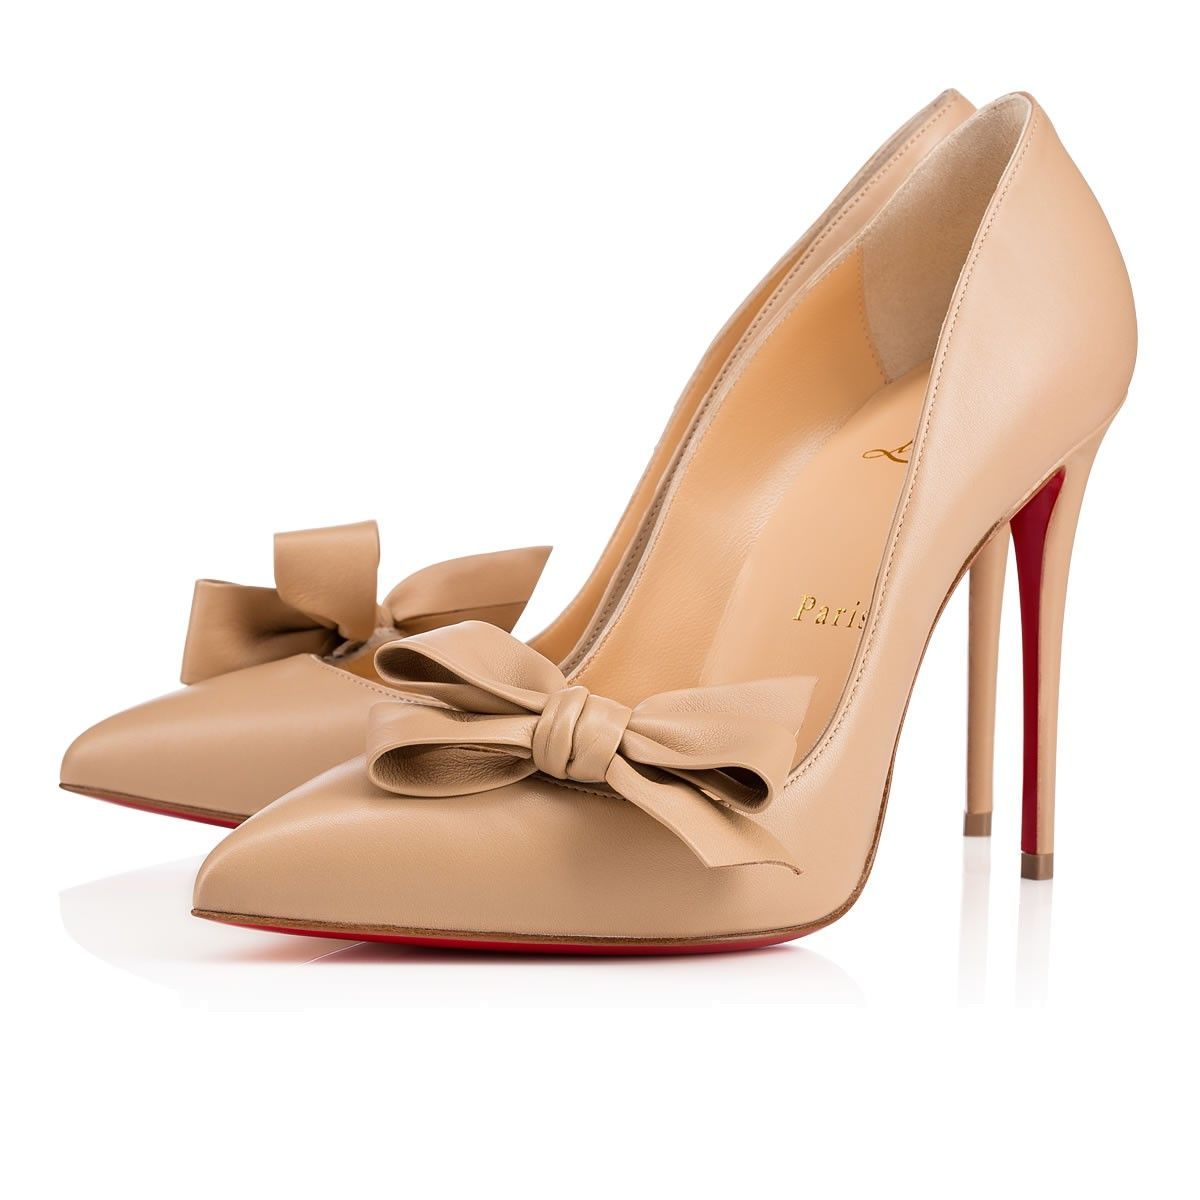 45e7f87eccbb Madame Menodo 100 Nude 1 Leather - Women Shoes - Christian Louboutin